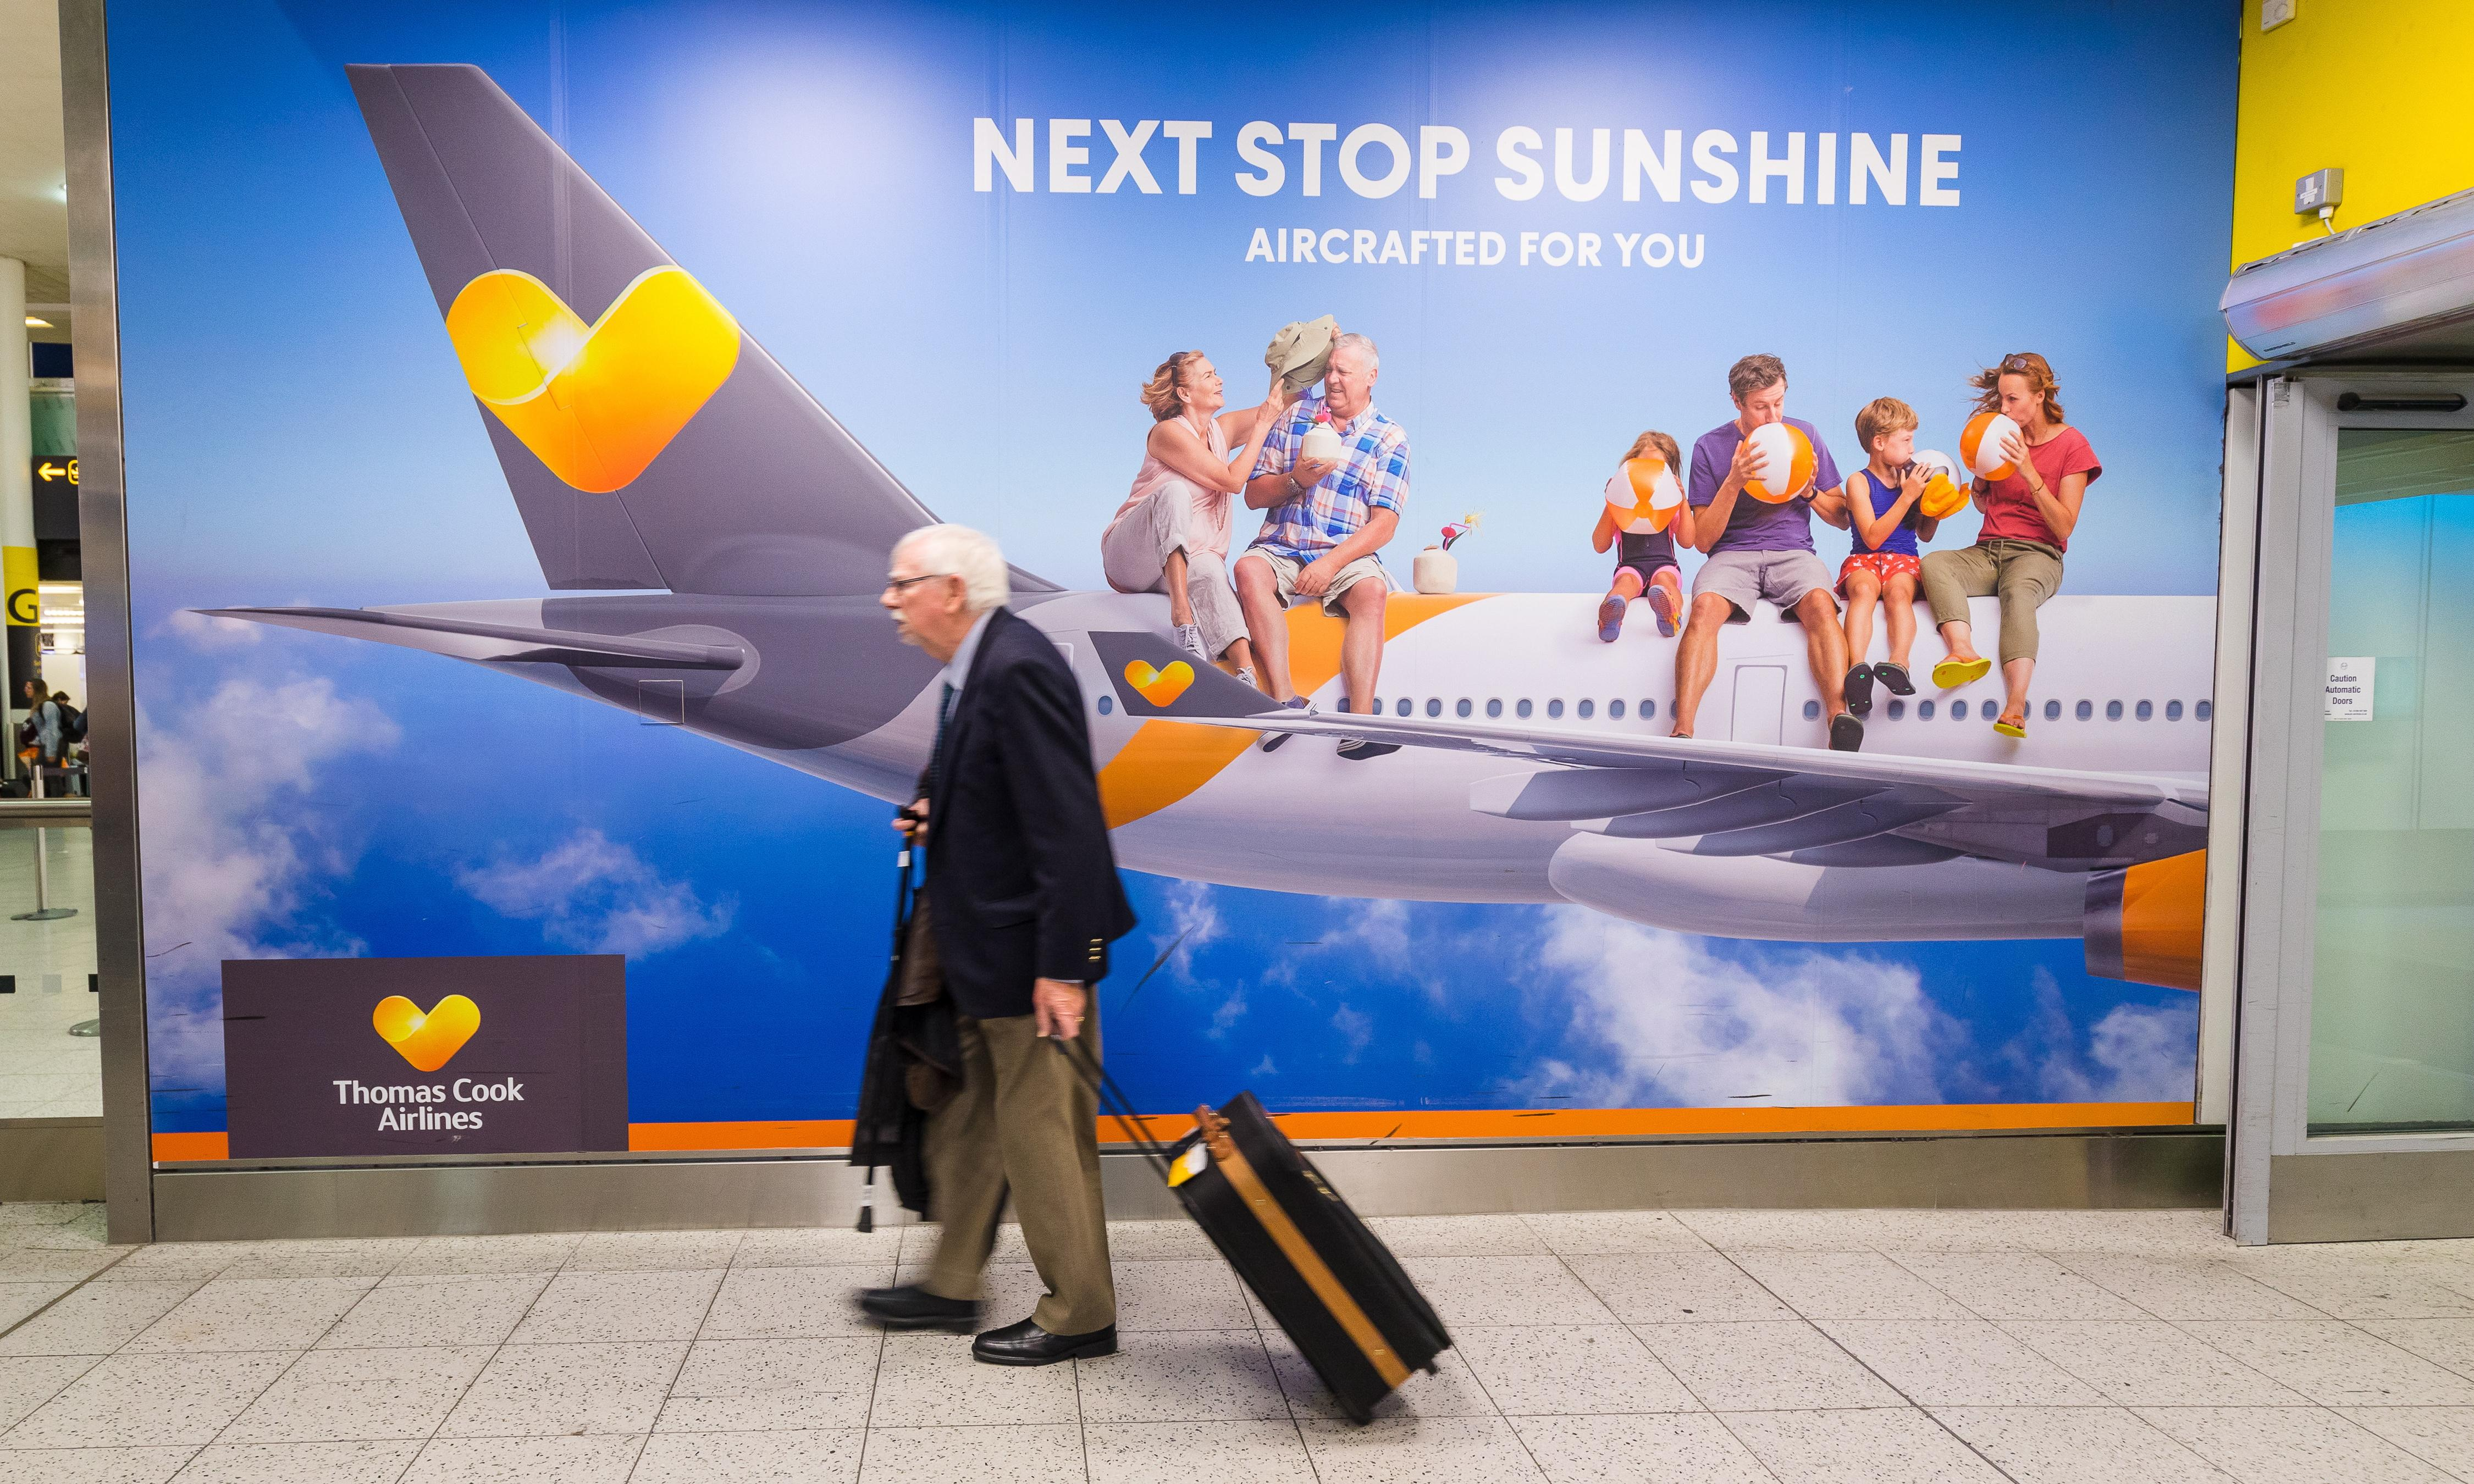 Yes, businesses fail. But Thomas Cook's bosses ignored the brutal facts